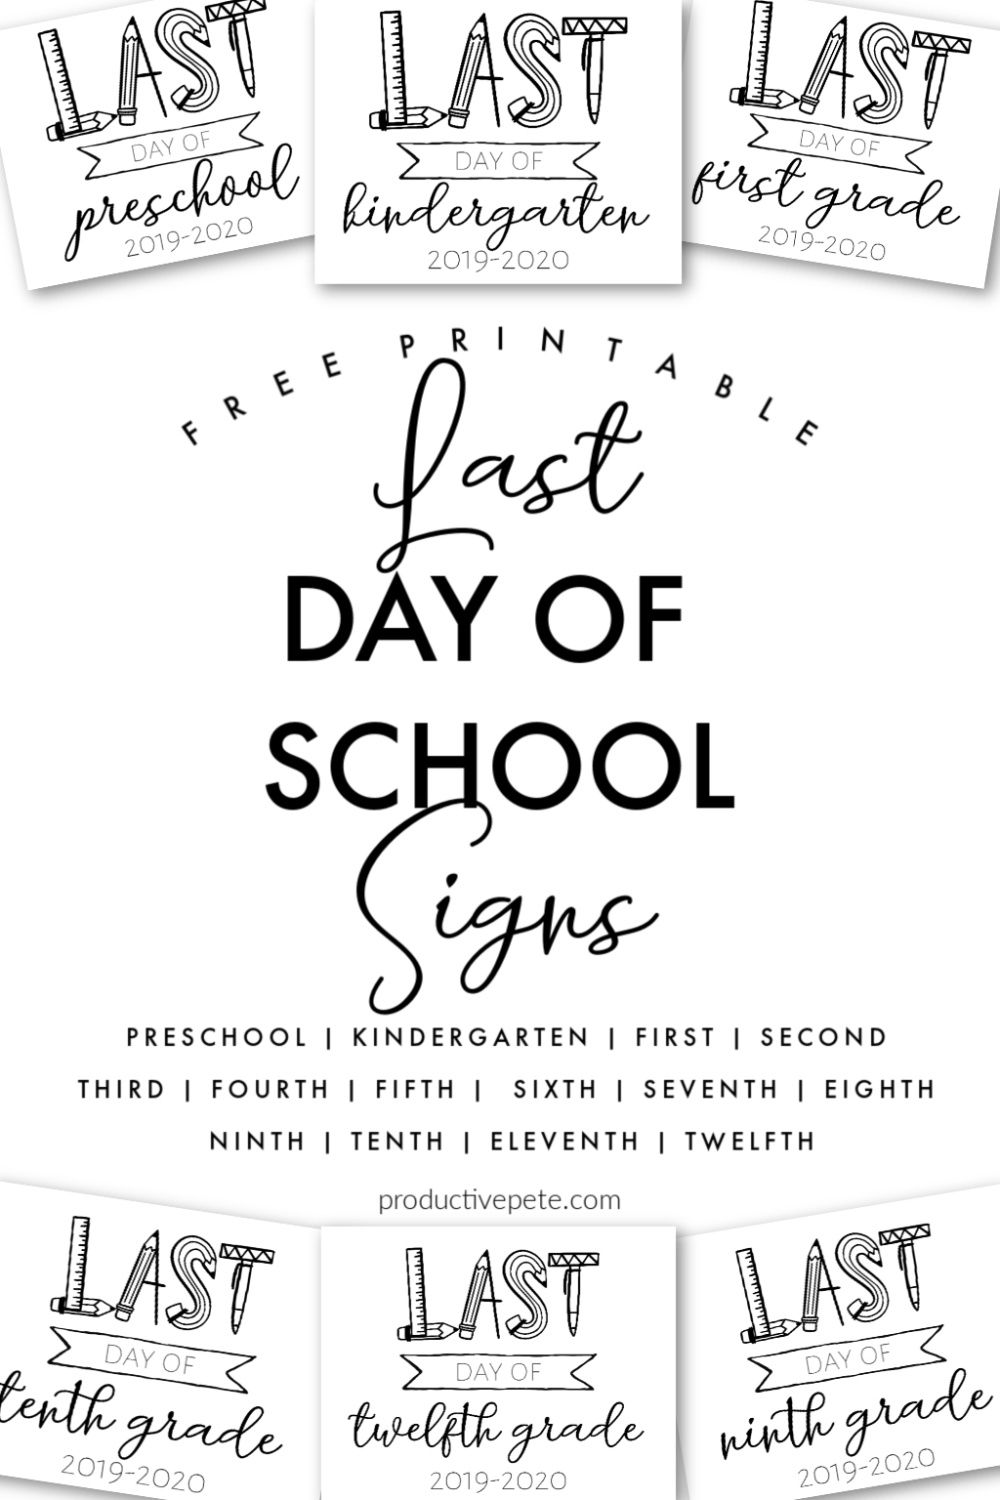 Free Printable Last Day Of School Signs For The 2020 2021 School Year School Signs Last Day Of School End Of School Year [ 1500 x 1000 Pixel ]